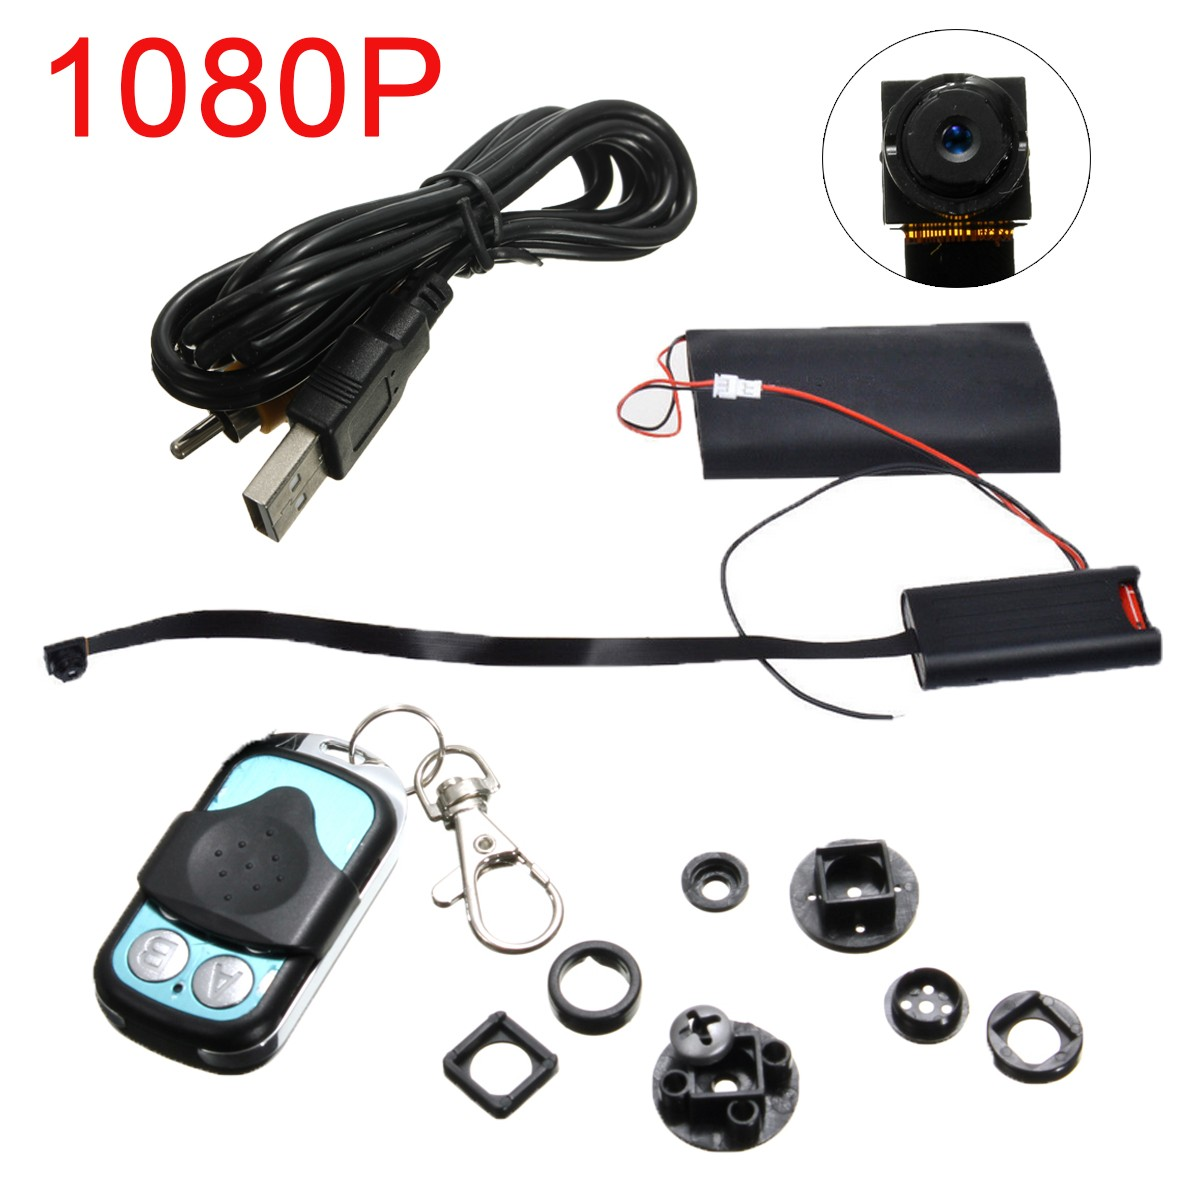 HD 1080P Mini DV DVR Camera DIY Module Hidden Video Recorder Remote Control